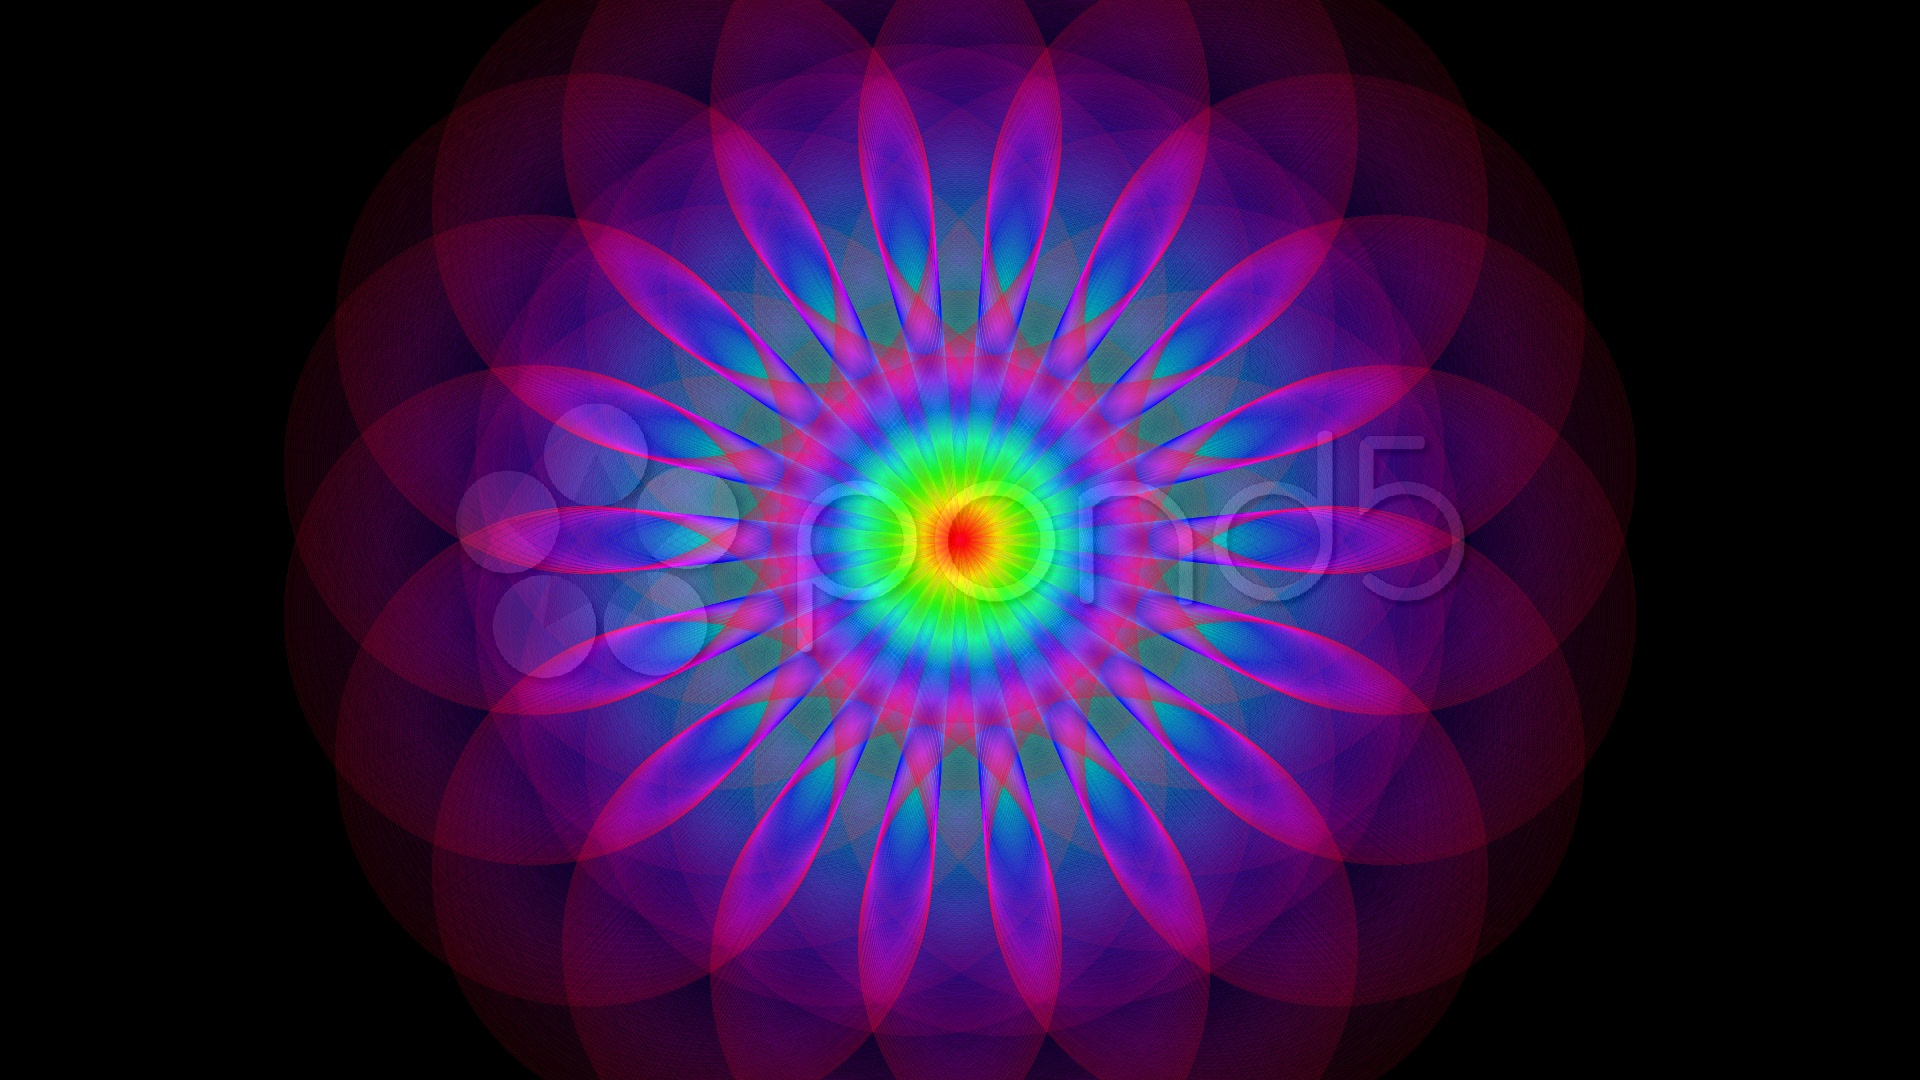 Sacred Geometry Hd Stock Video 753605 HD Stock Footage 1920x1080